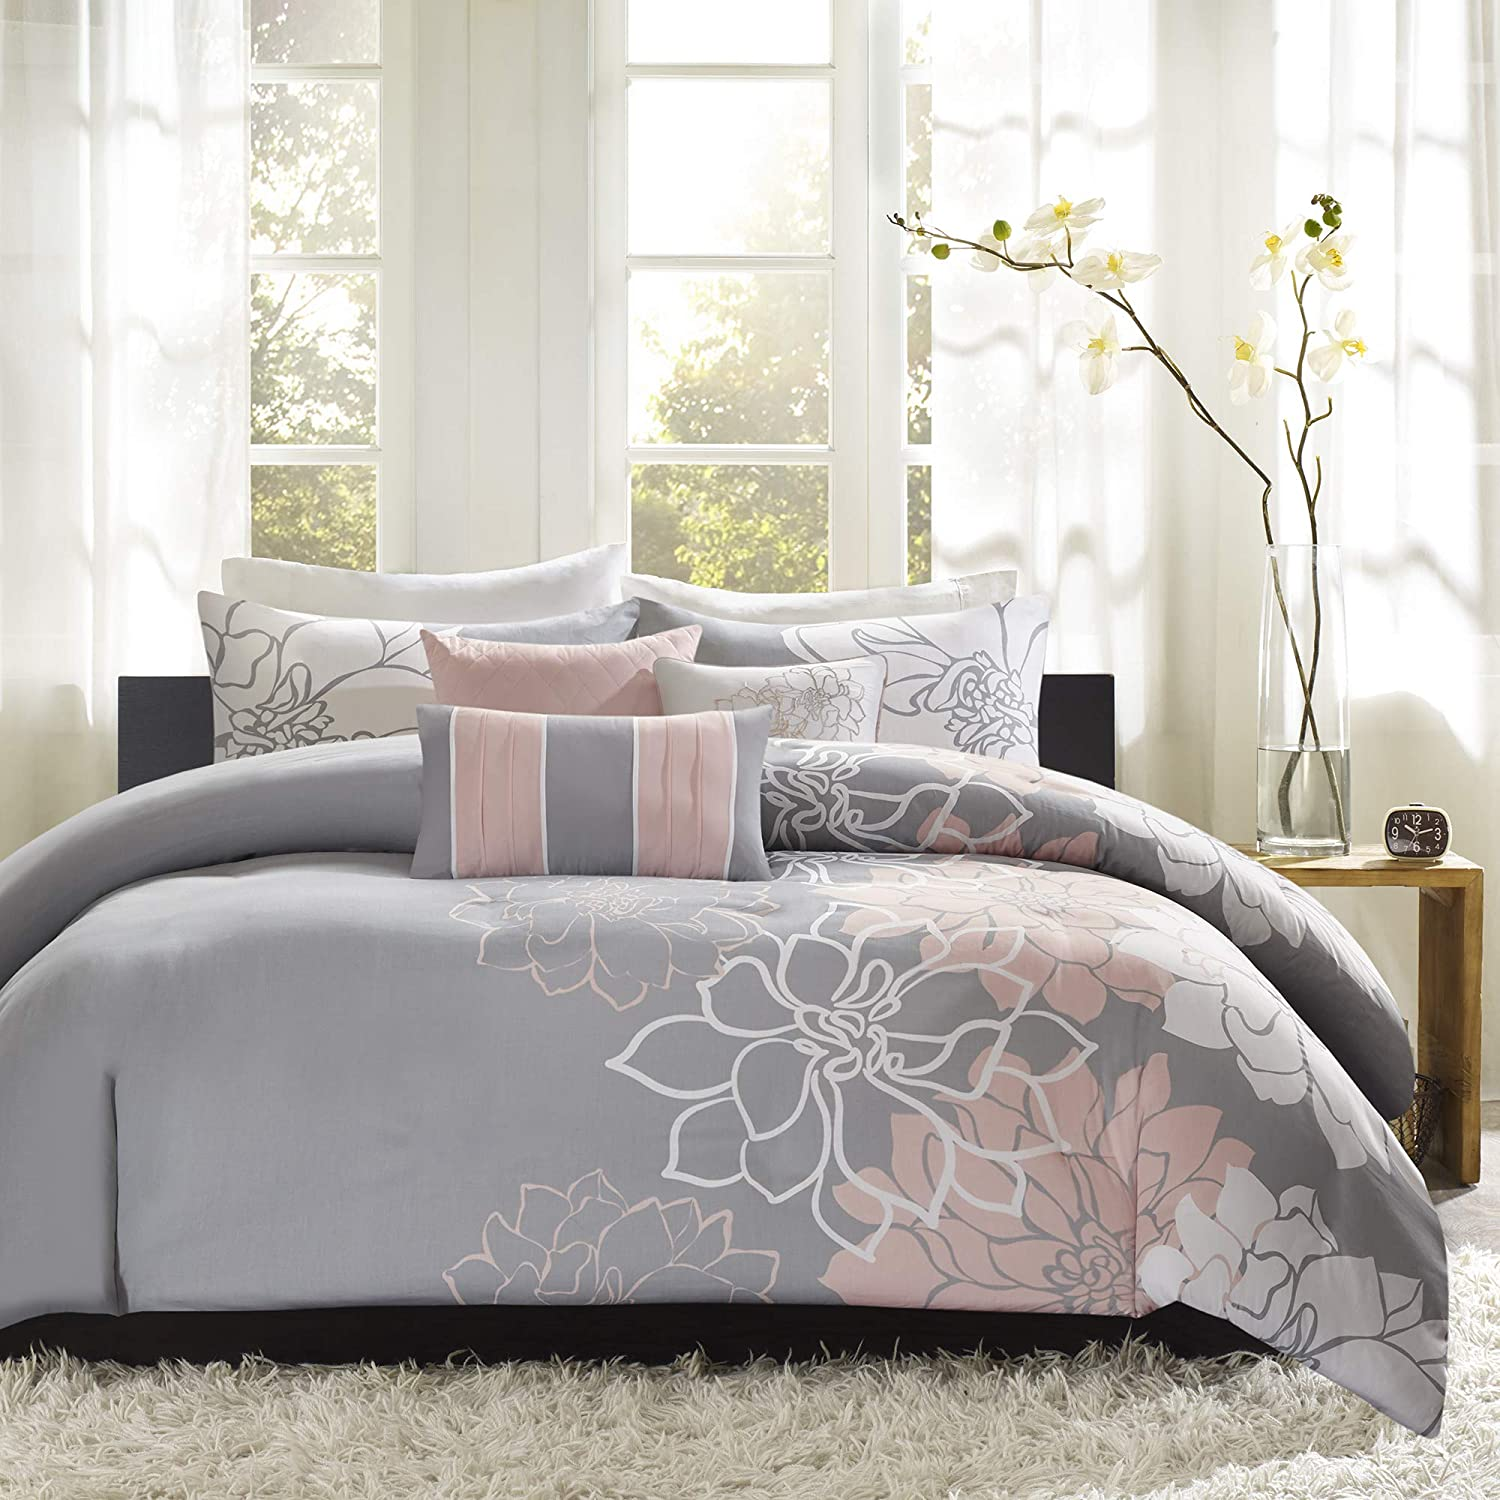 """Madison Park Lola Cotton Duvet-Modern Large Floral Trendy Design All Season Comforter Cover Bedding Set with Matching Shams, Decorative Pillows, Full/Queen(90""""x90""""), Grey/Blush, 6 Piece"""